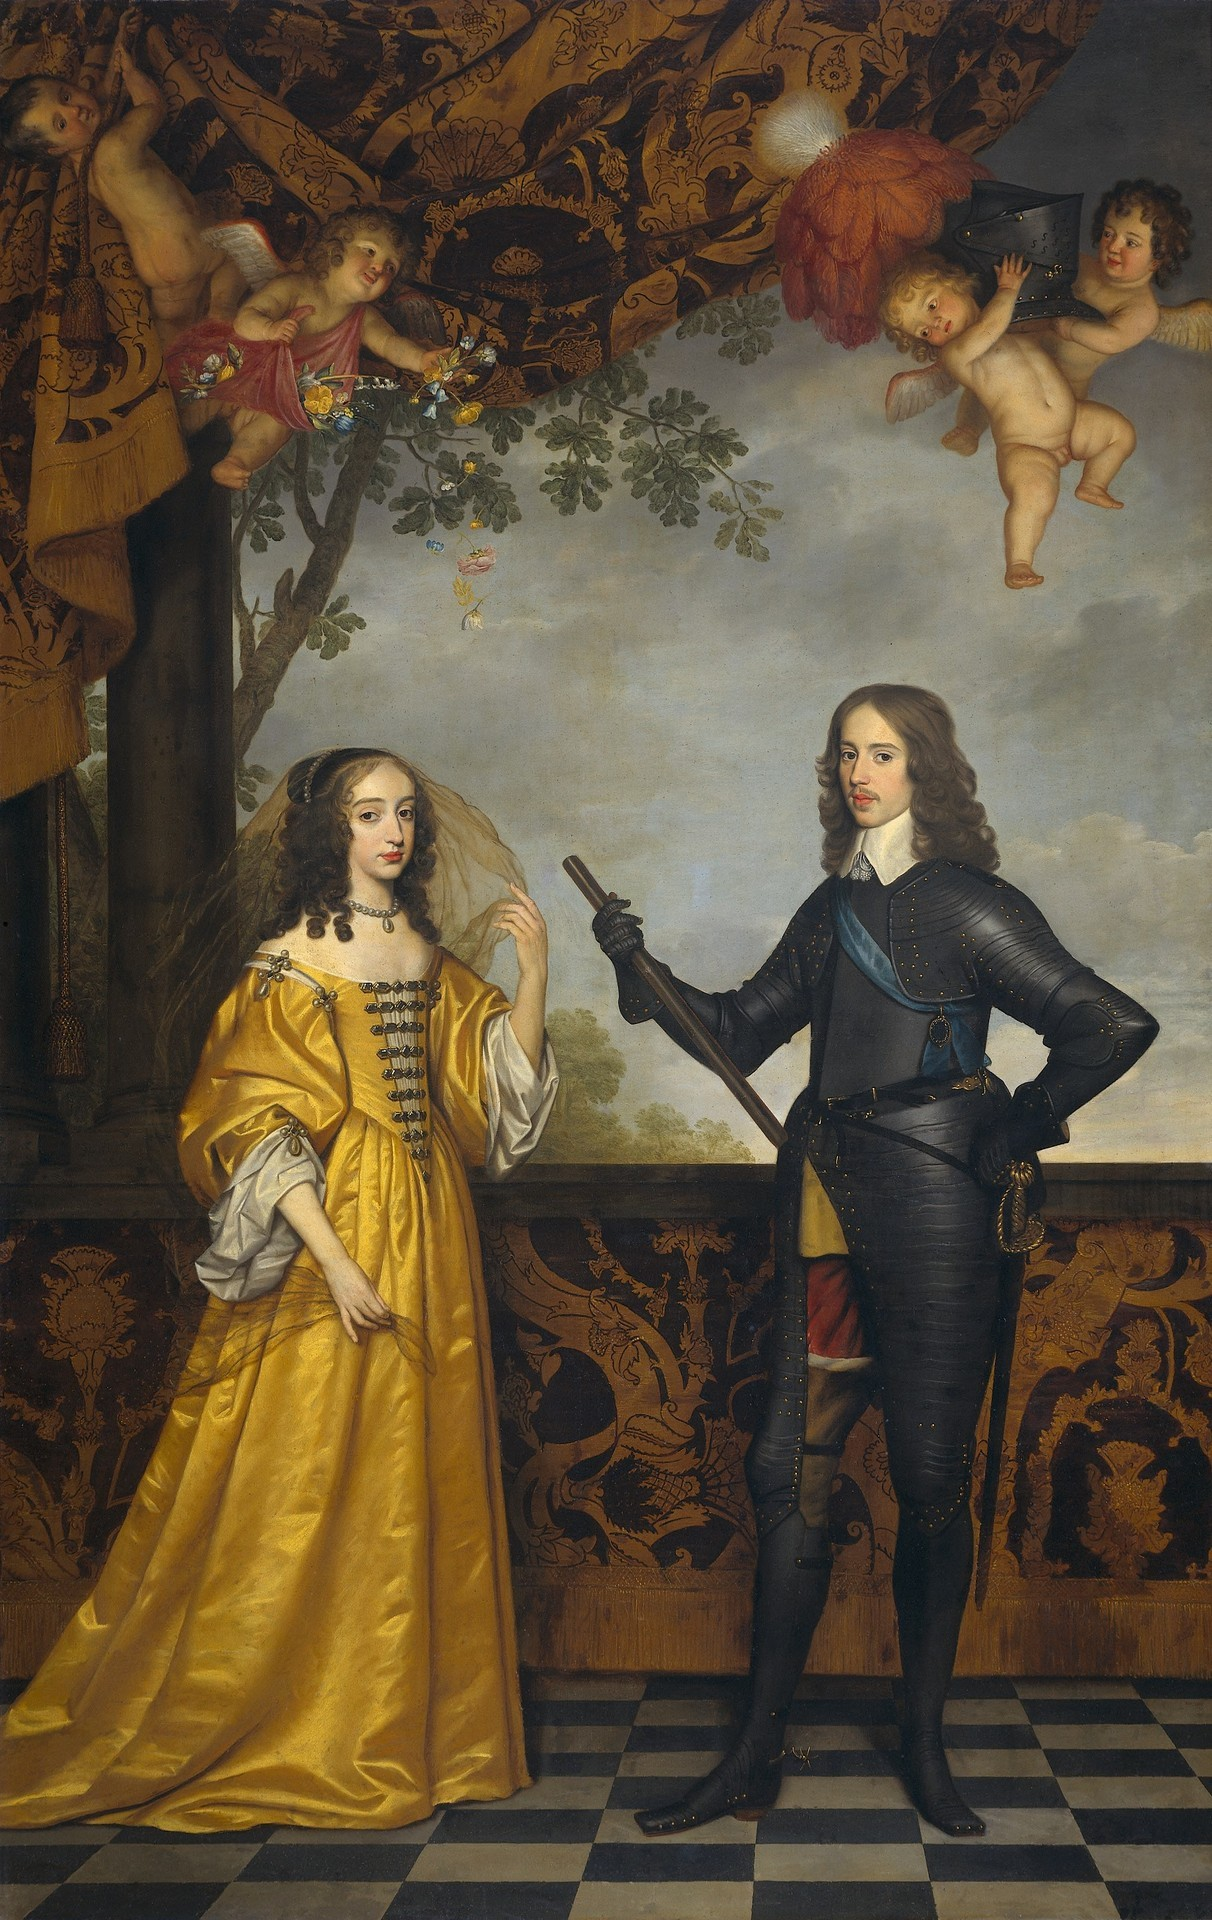 hothistoricalfigures:  On the right is Prince William II of Orange, ruler of the Netherlands in the mid-seventeenth century. To his left is Mary Stuart, daughter of Charles I of England and William's wife (if that sounds complicated, wait until I get round to William's son, William, who married Mary's niece, Mary). This picture shows the pair looking fantastic, Mary shimmering in a gorgeous dress and William showing off in his tight black catsuit. Those cherubs are probably squabbling over who gets to try it on with them. If they aren't blood relatives, they need not bother.